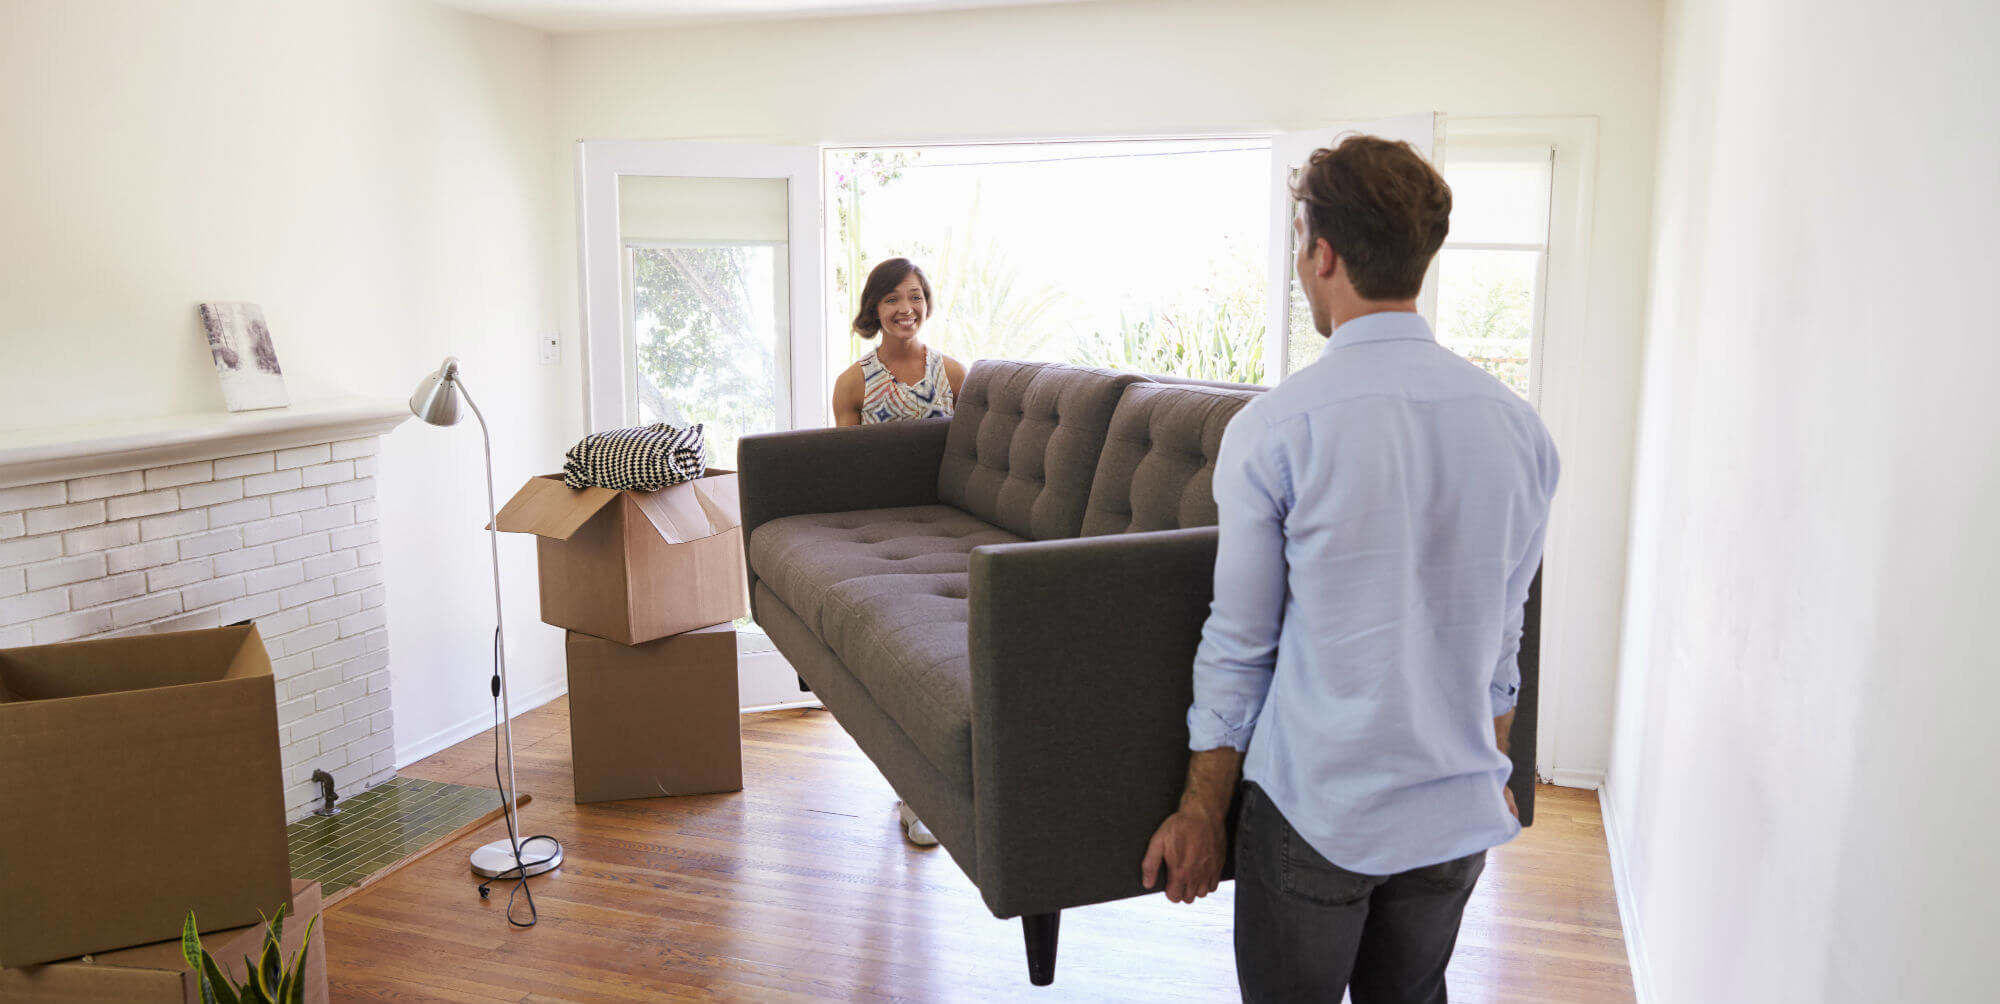 Couple moving a couch into their new home